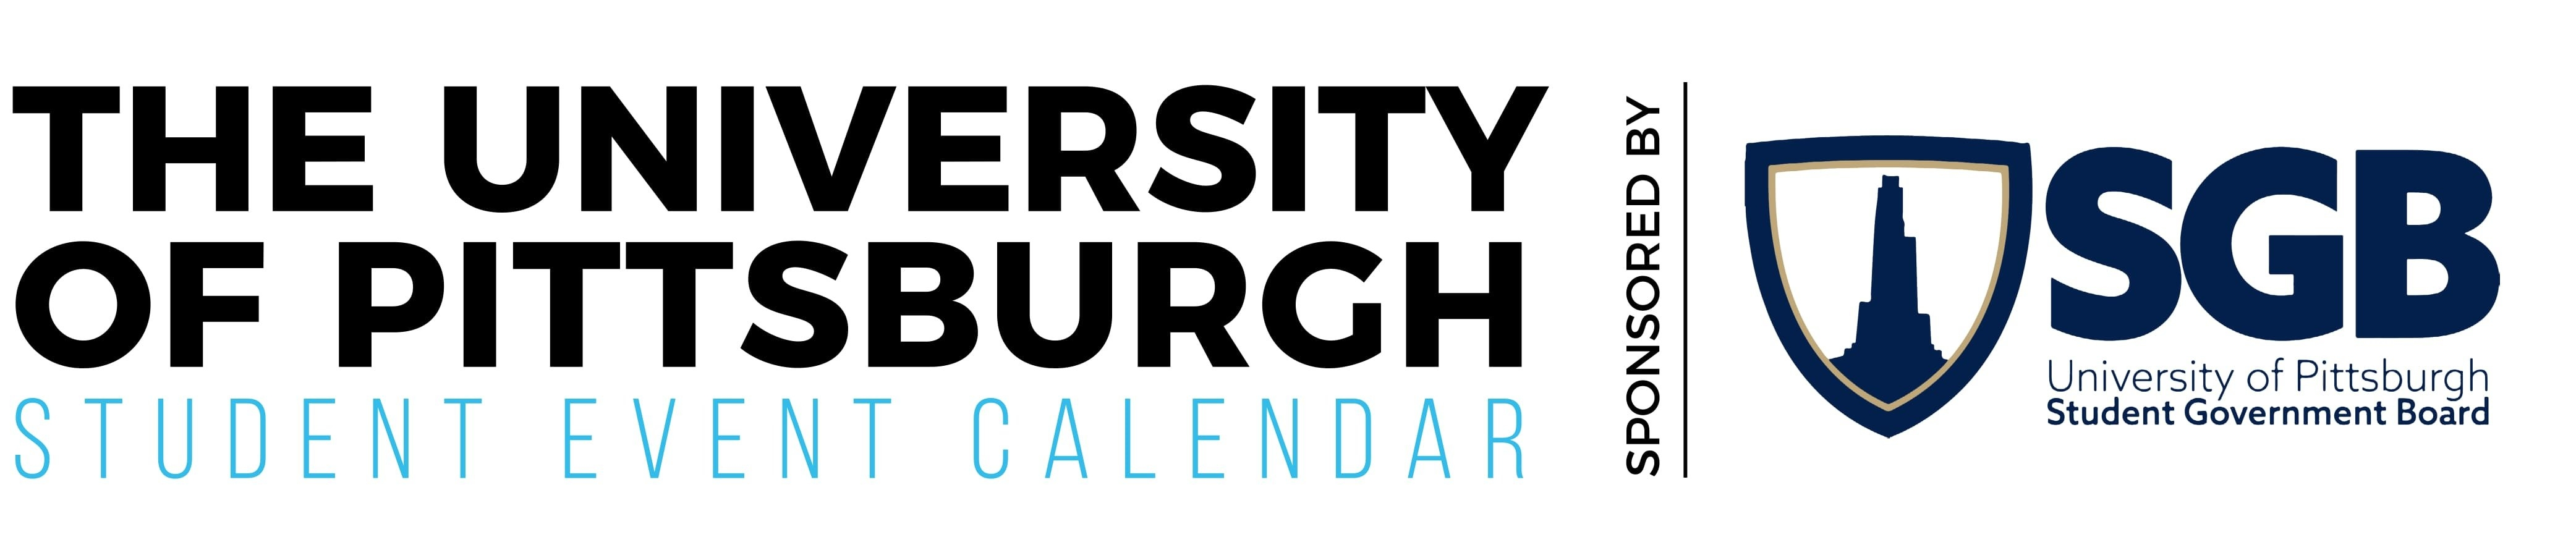 Events Calendar - The Pitt News U Pitt Calendar 2019